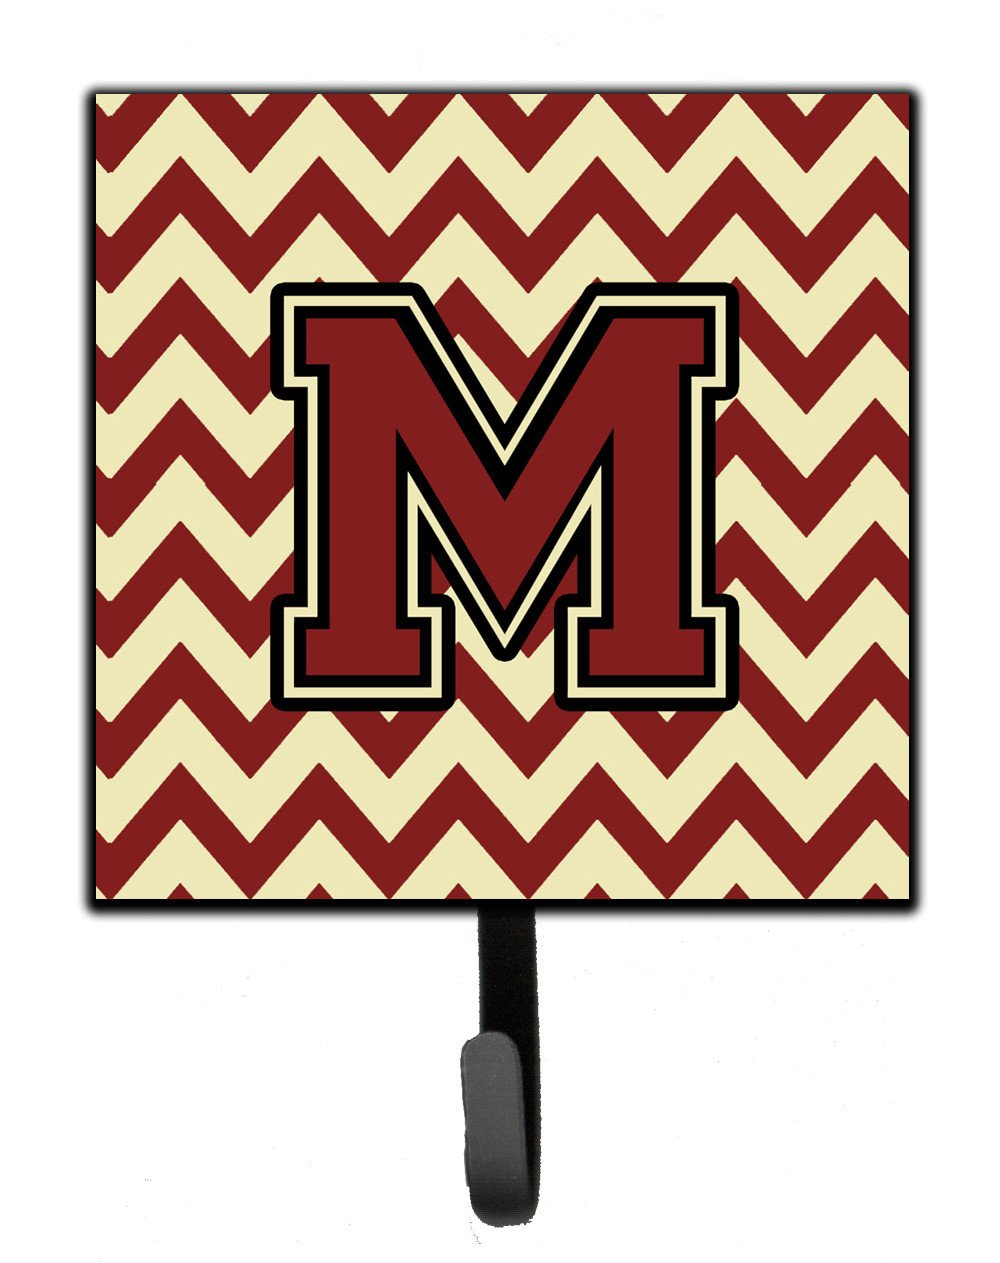 Letter M Chevron Maroon and Gold Leash or Key Holder CJ1061-MSH4 by Caroline's Treasures